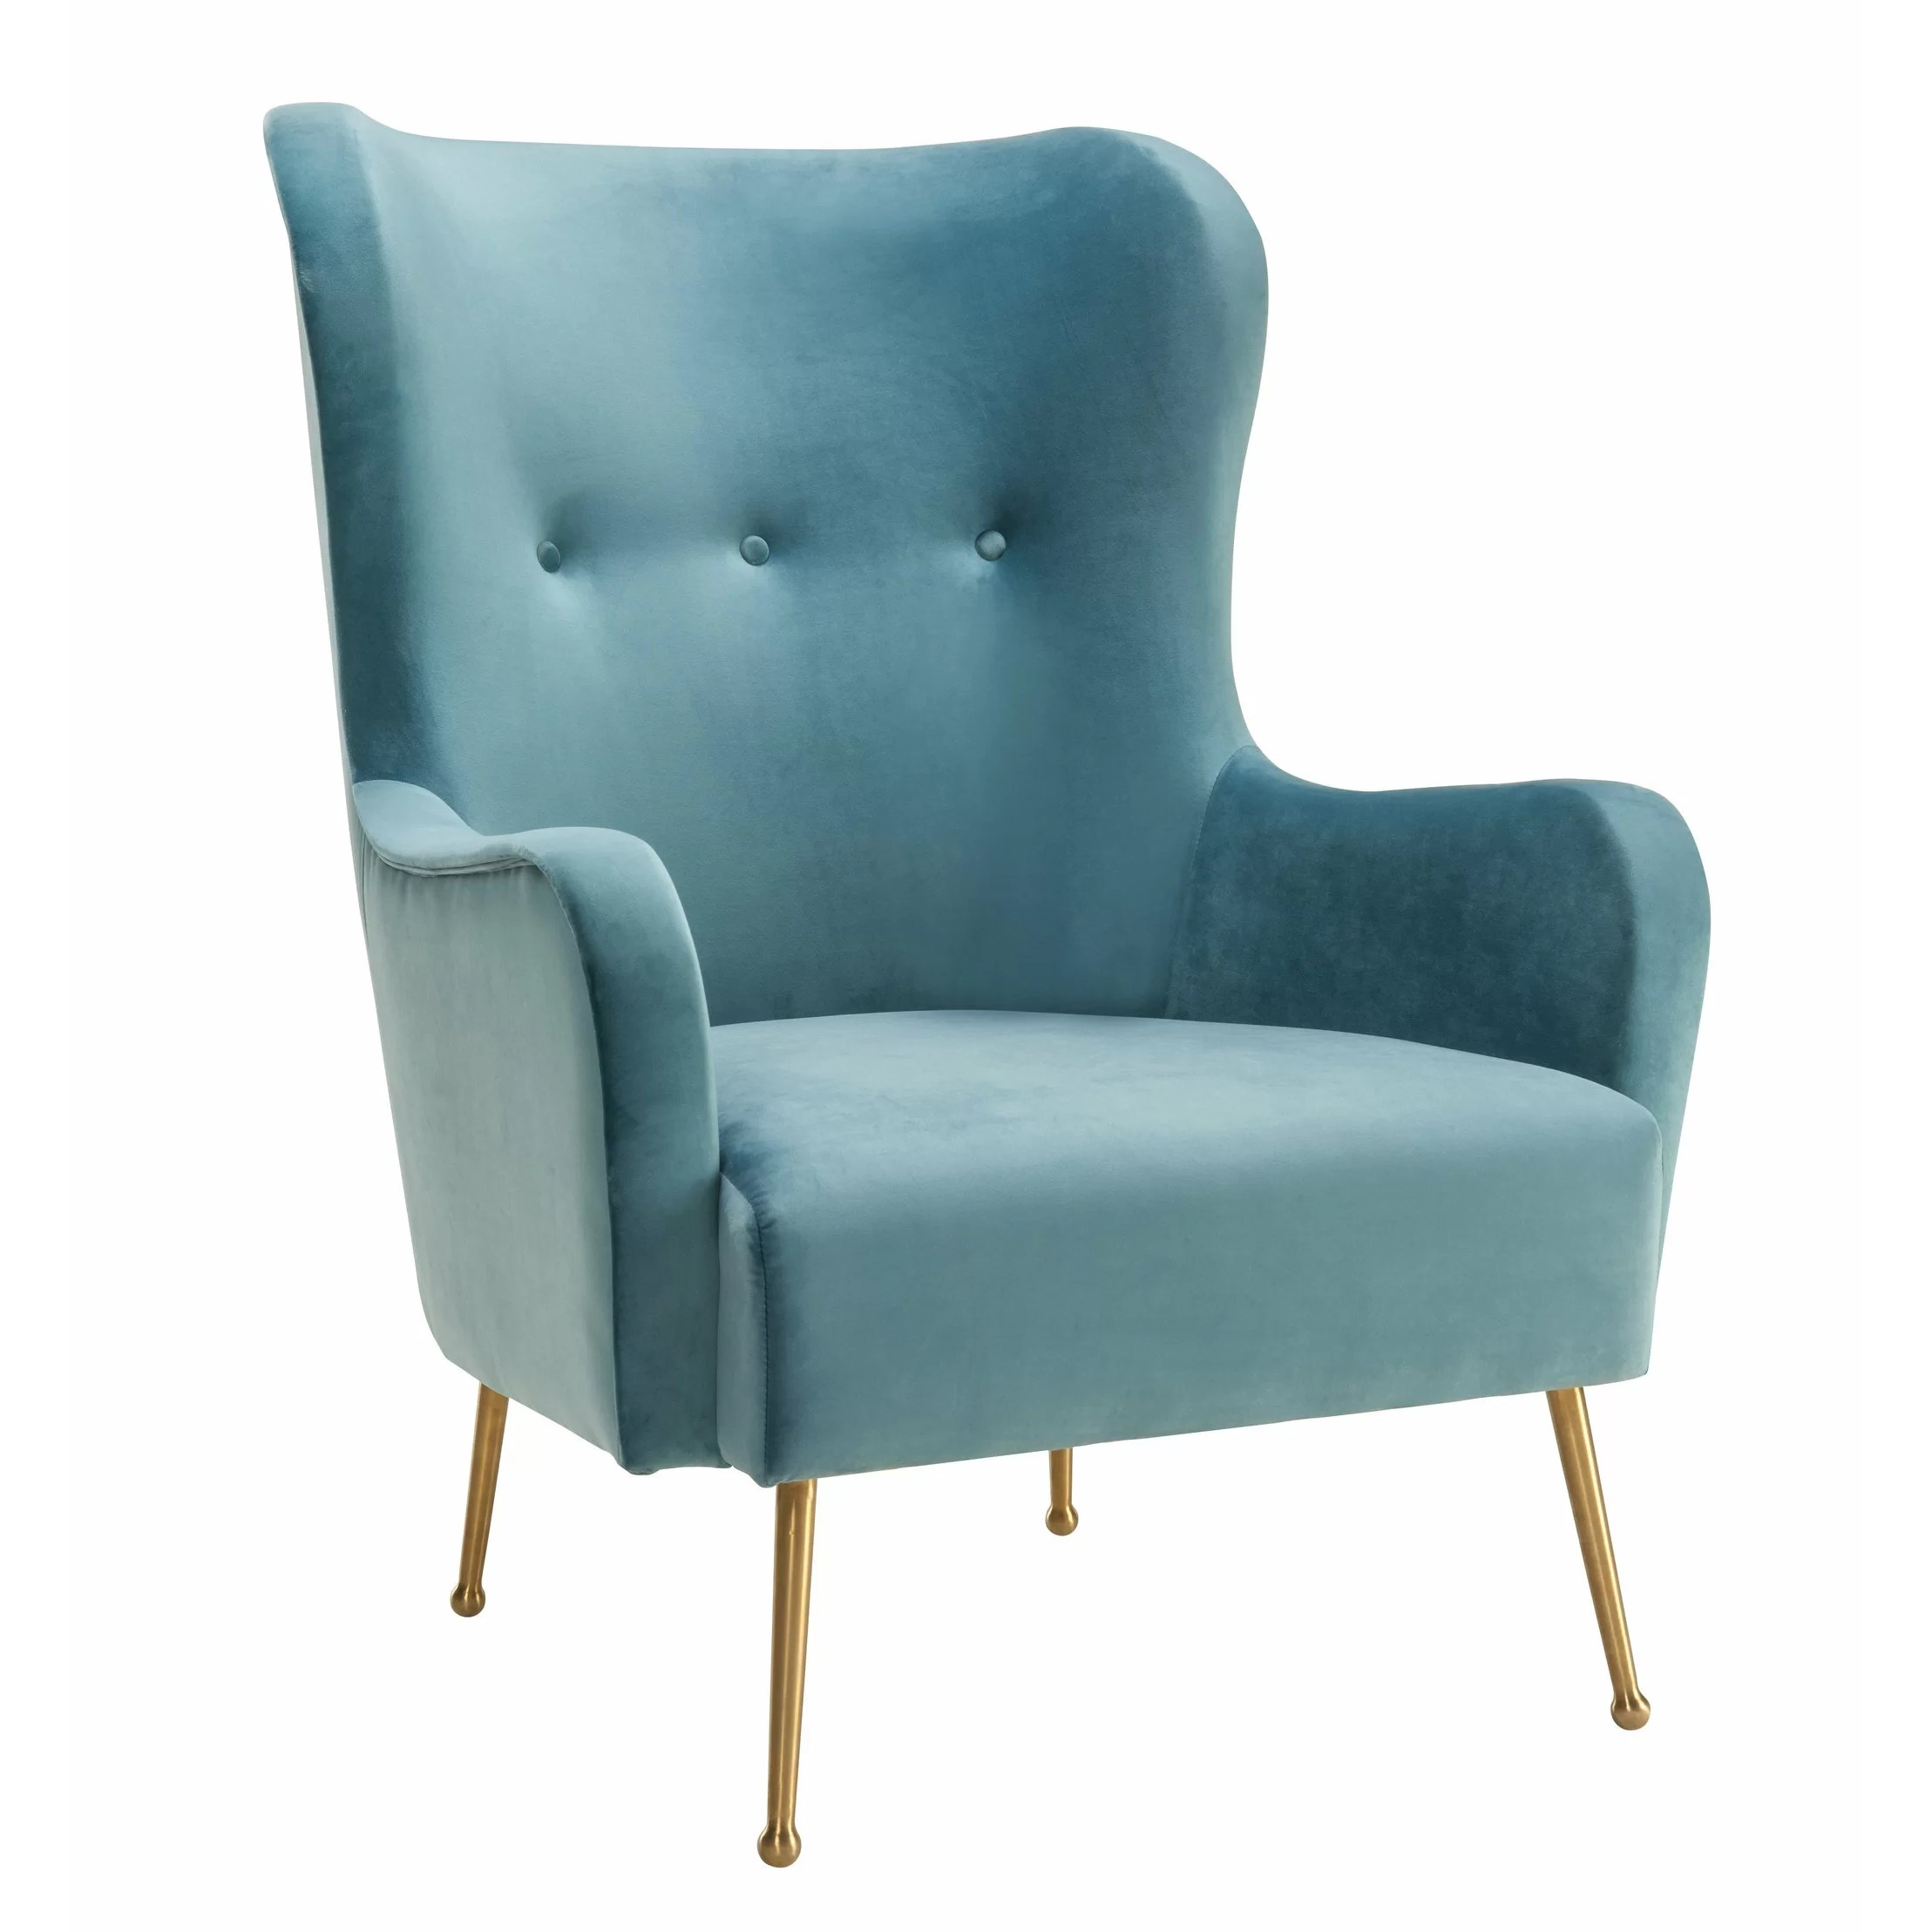 Wayfair Wingback Chair Mercer41 Tanzanite Velvet Wingback Chair Wayfair